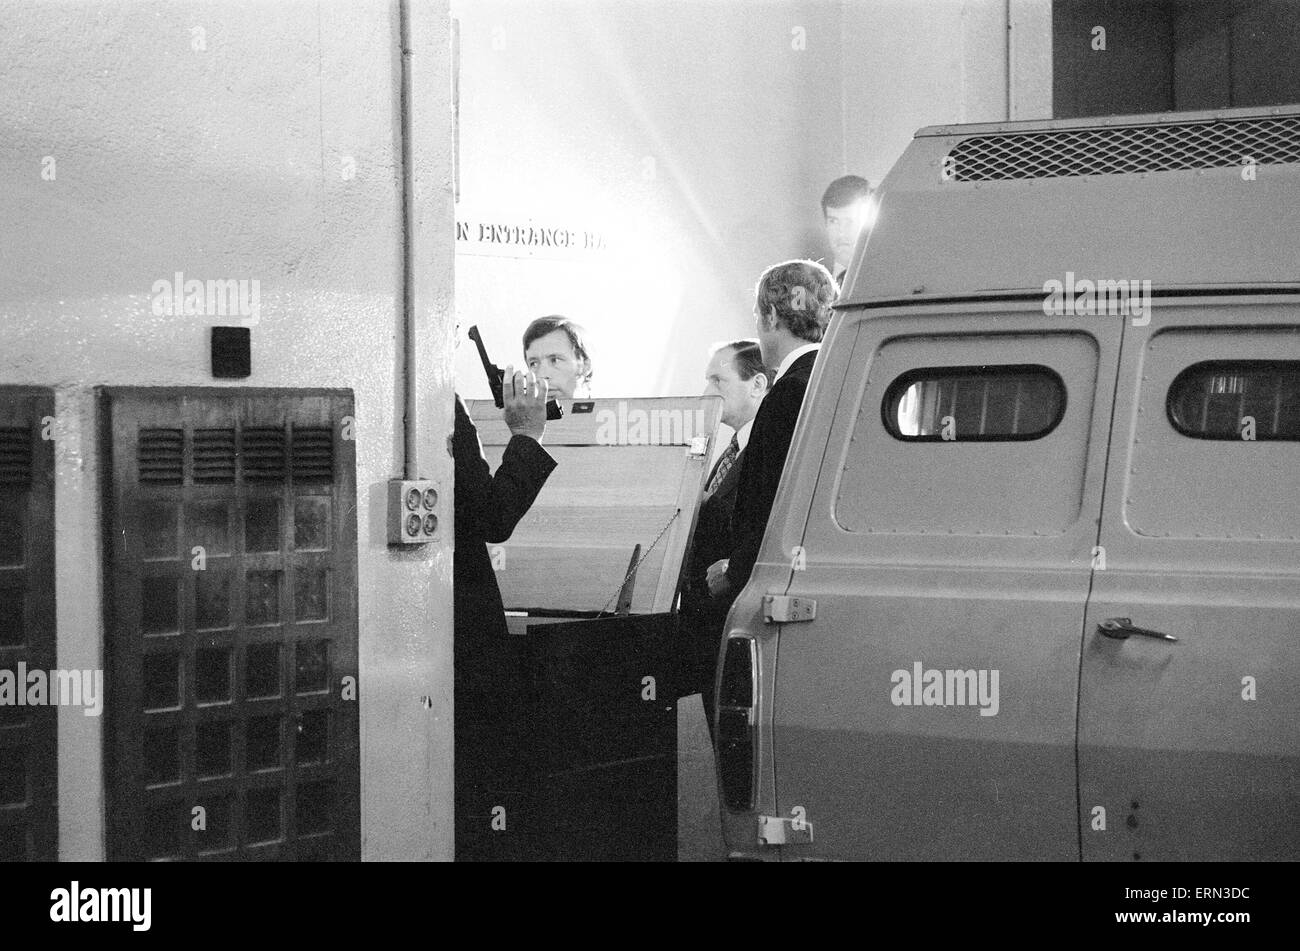 Armed Robbery committed at Daily Mirror Headquarters in Holborn, London, 31st May 1978. Two robbers attacked Security - Stock Image